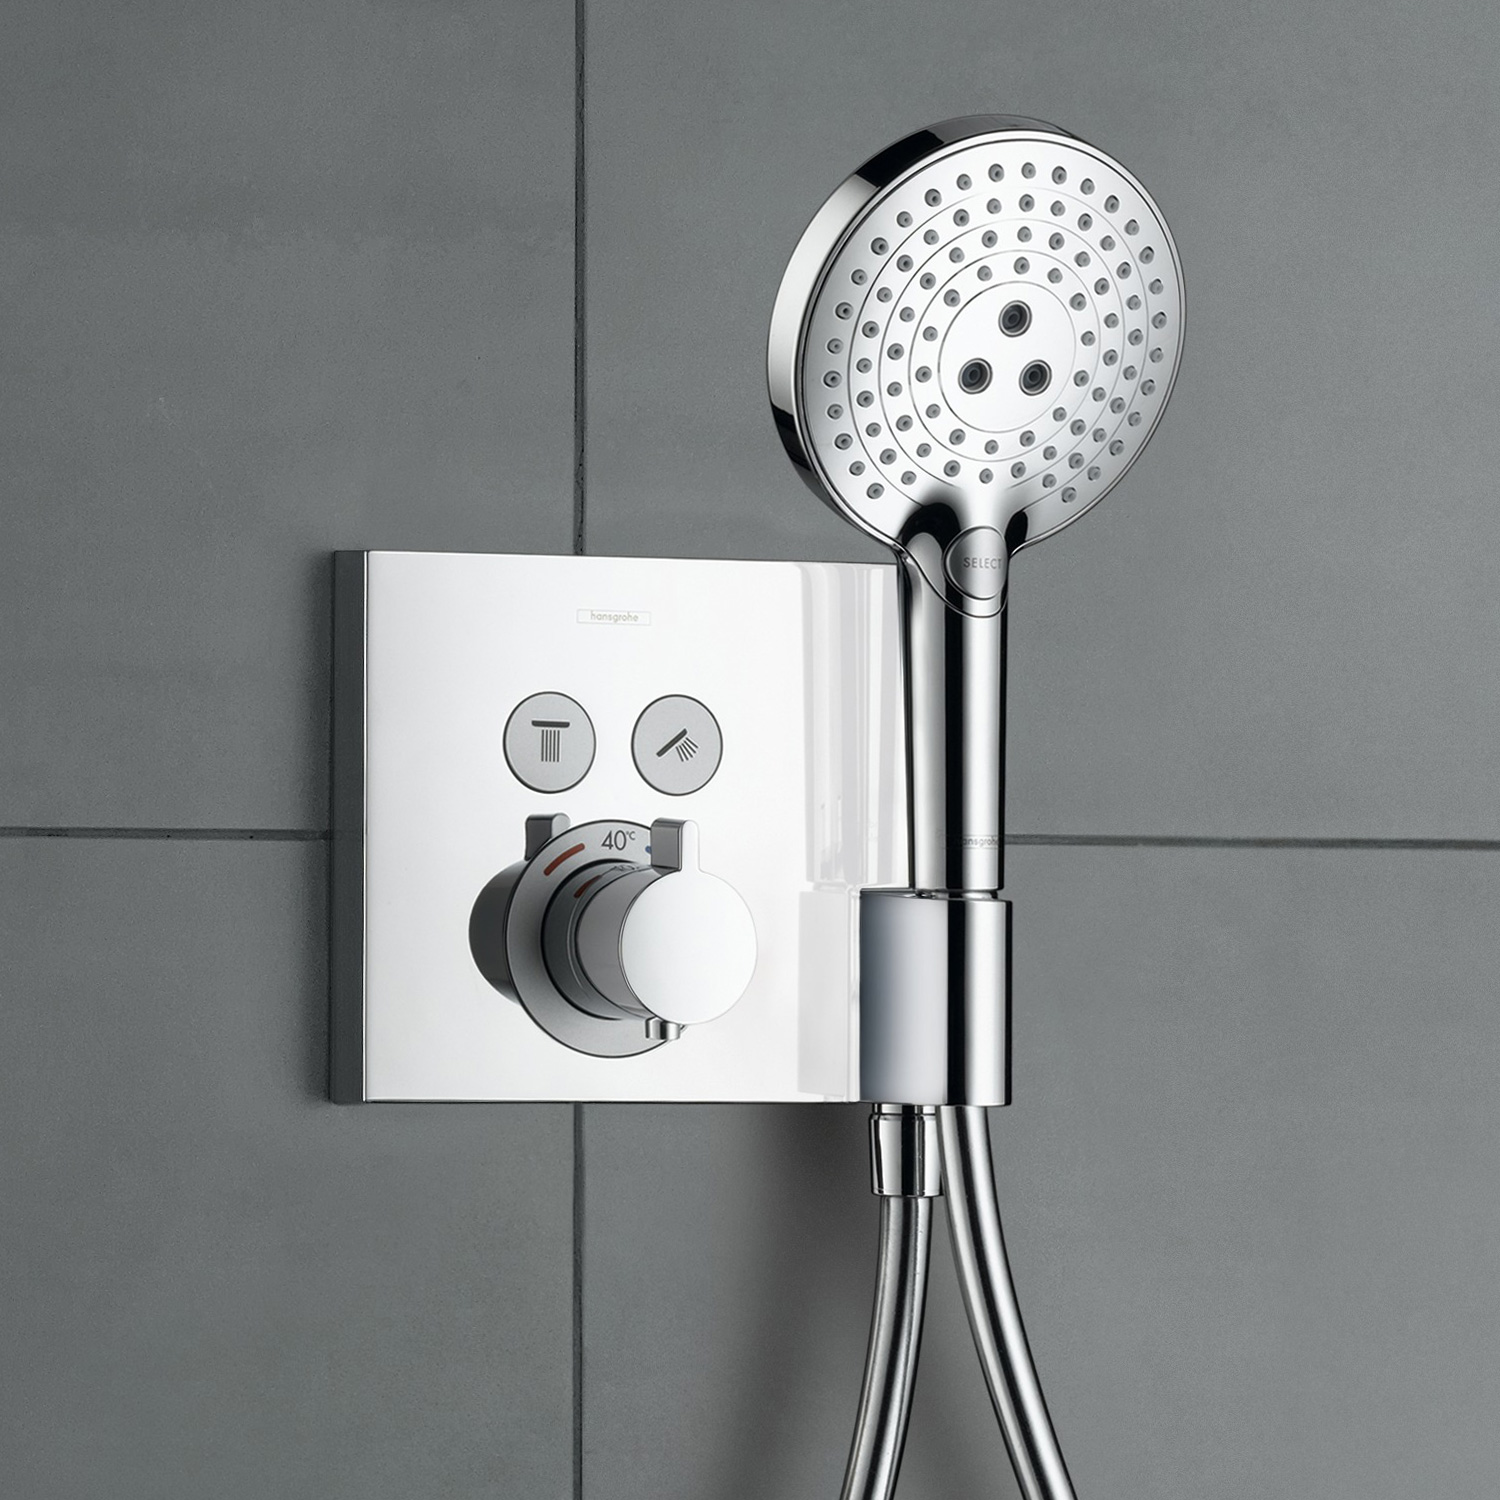 Hansgrohe Unterputz Thermostat : hansgrohe showerselect thermostat unterputz f r 2 ~ Watch28wear.com Haus und Dekorationen